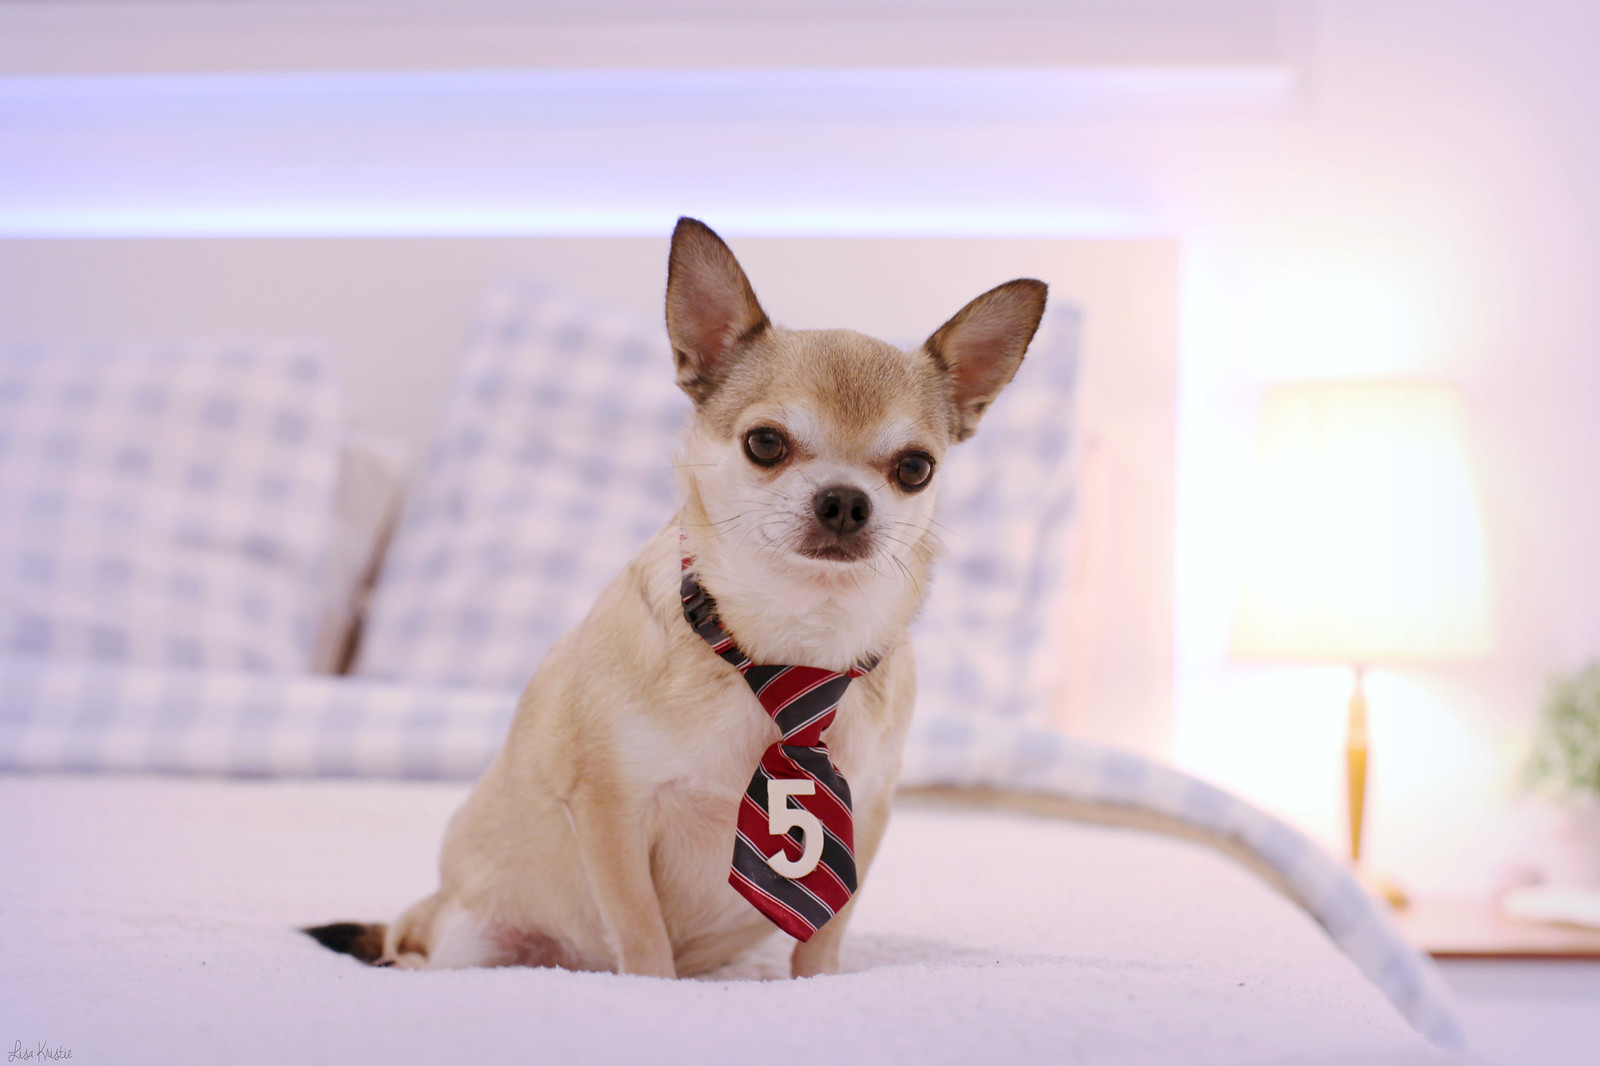 chihuahua 5th fifth birthday five 5 years old smooth coat short haired beige tan brown white tie